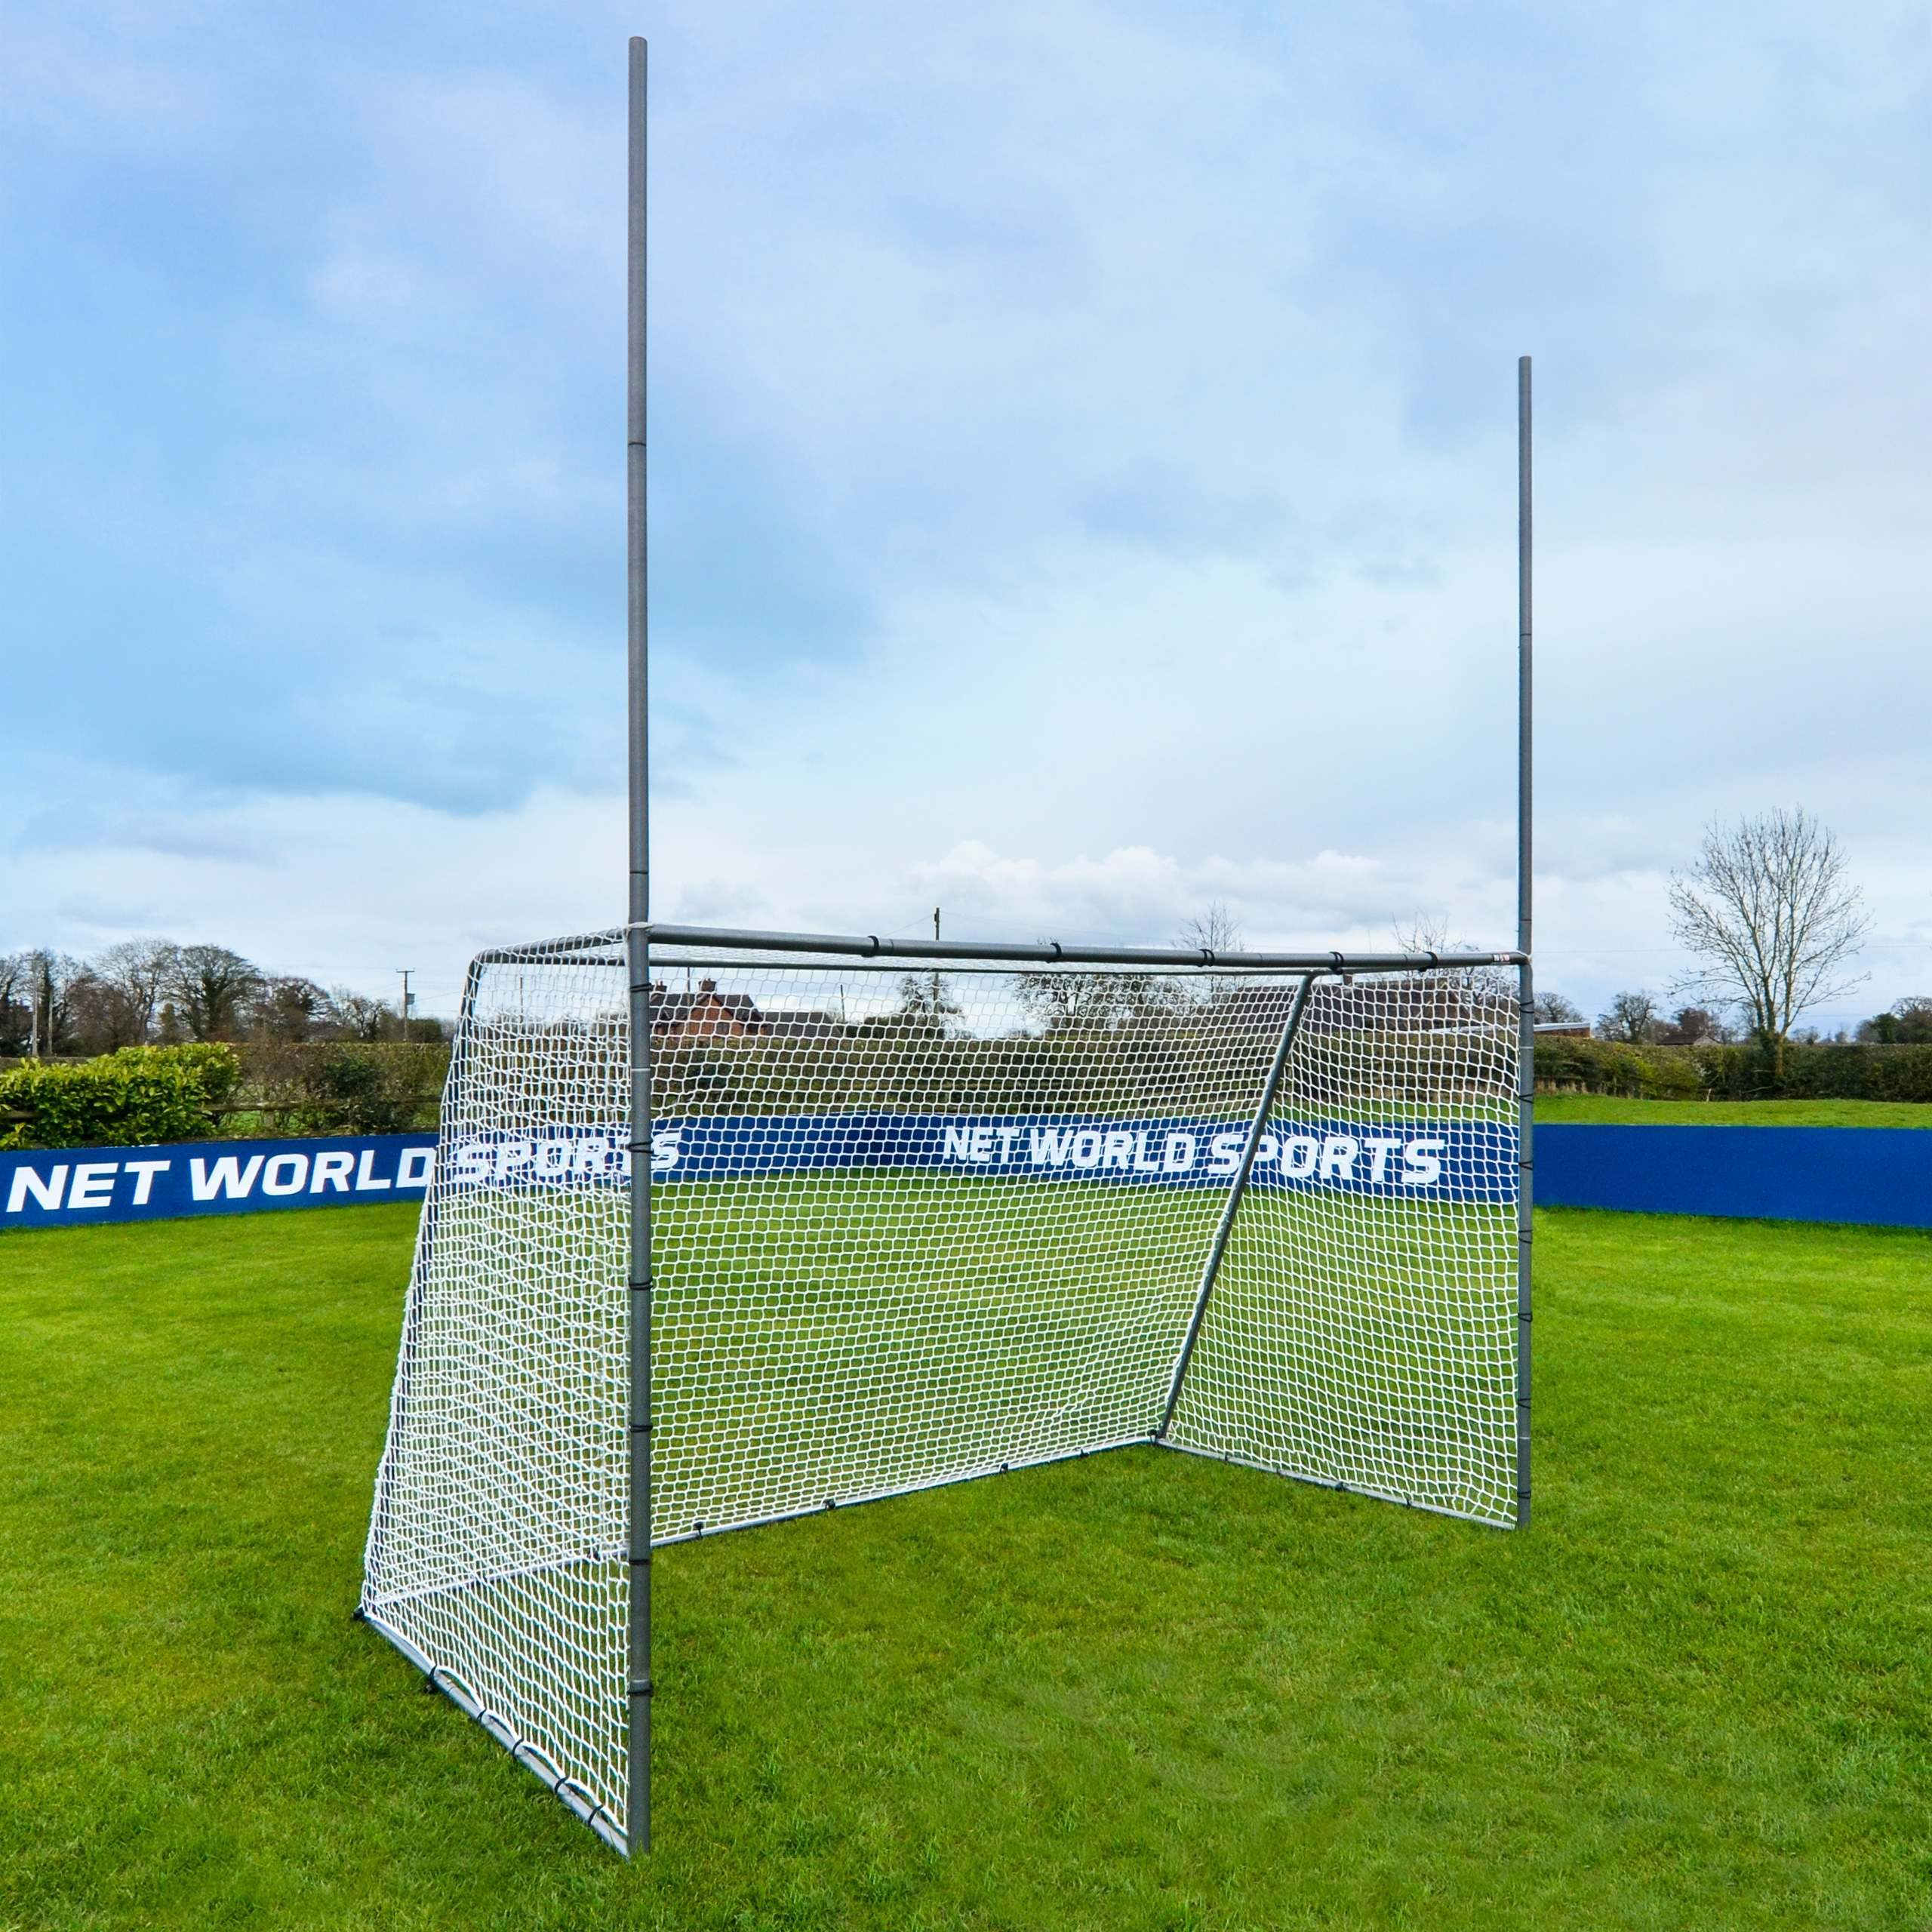 3m x 1.8m FORZA Steel42 GAA Gaelic Football & Hurling Goal